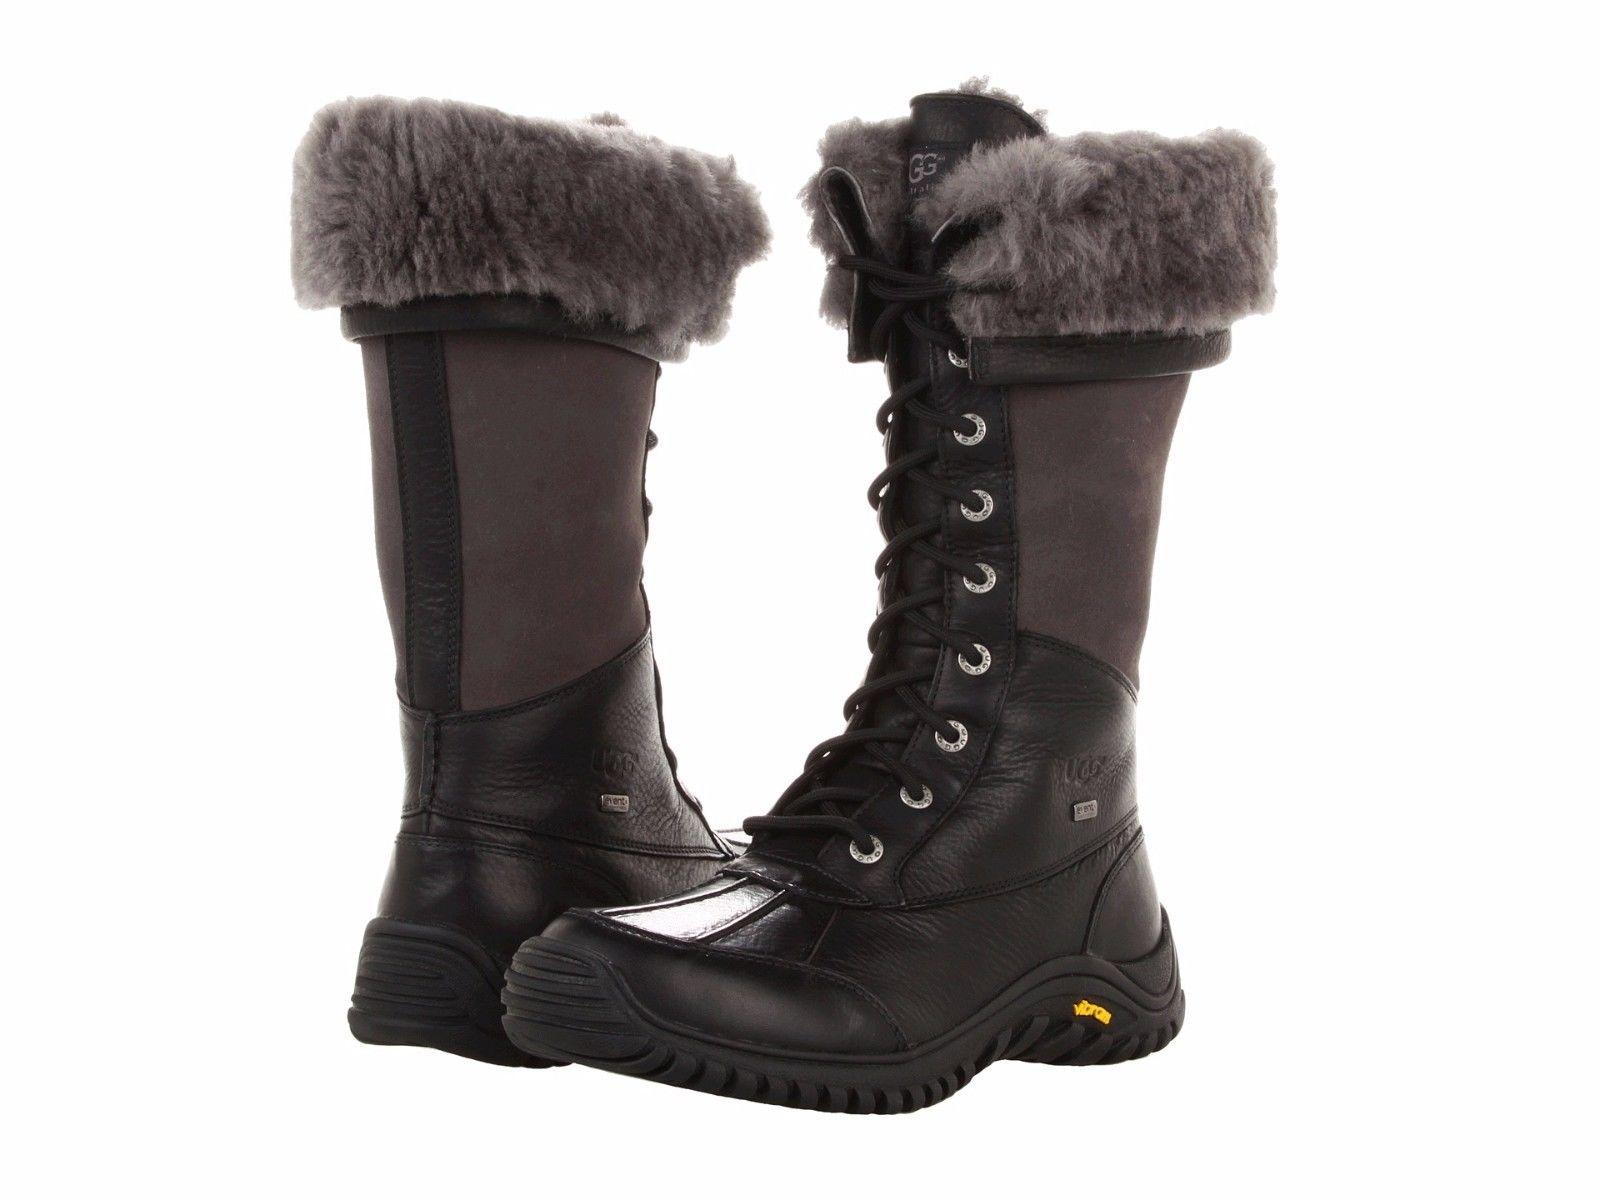 UGG Australia For Her 1001786 Size 8.5 Black Boots ...